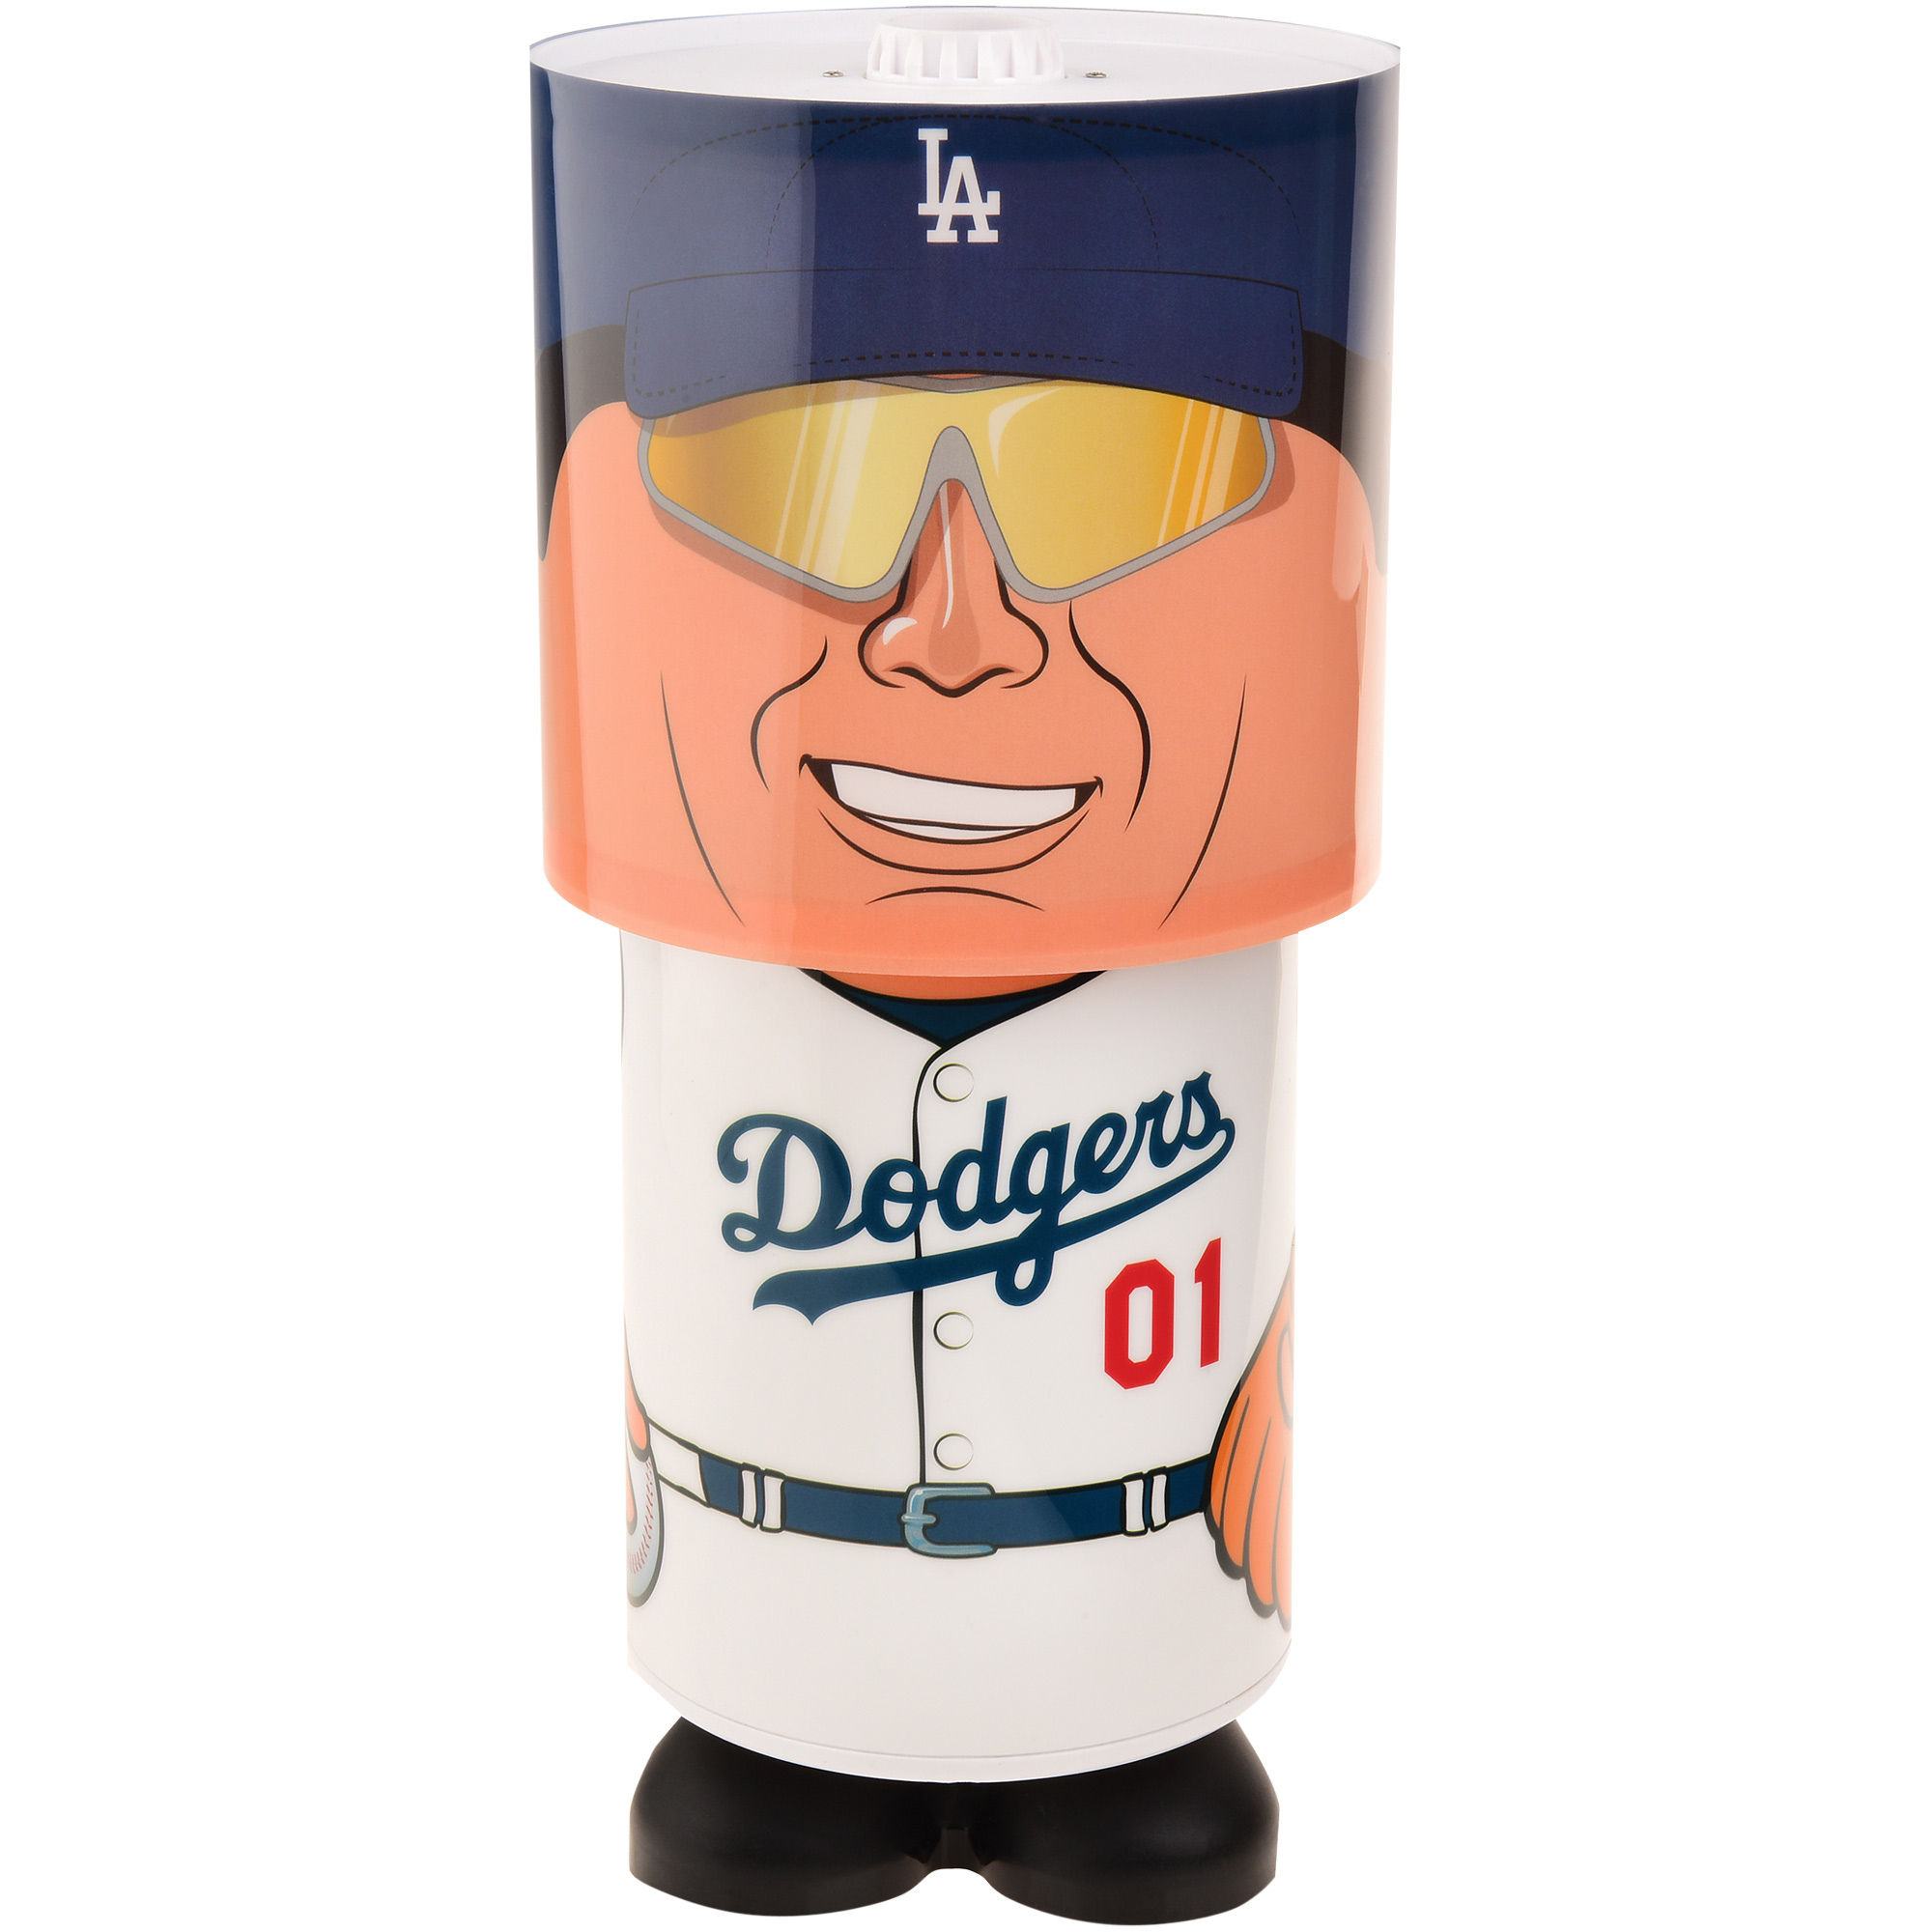 Los Angeles Dodgers Rotating Desk Lamp - No Size